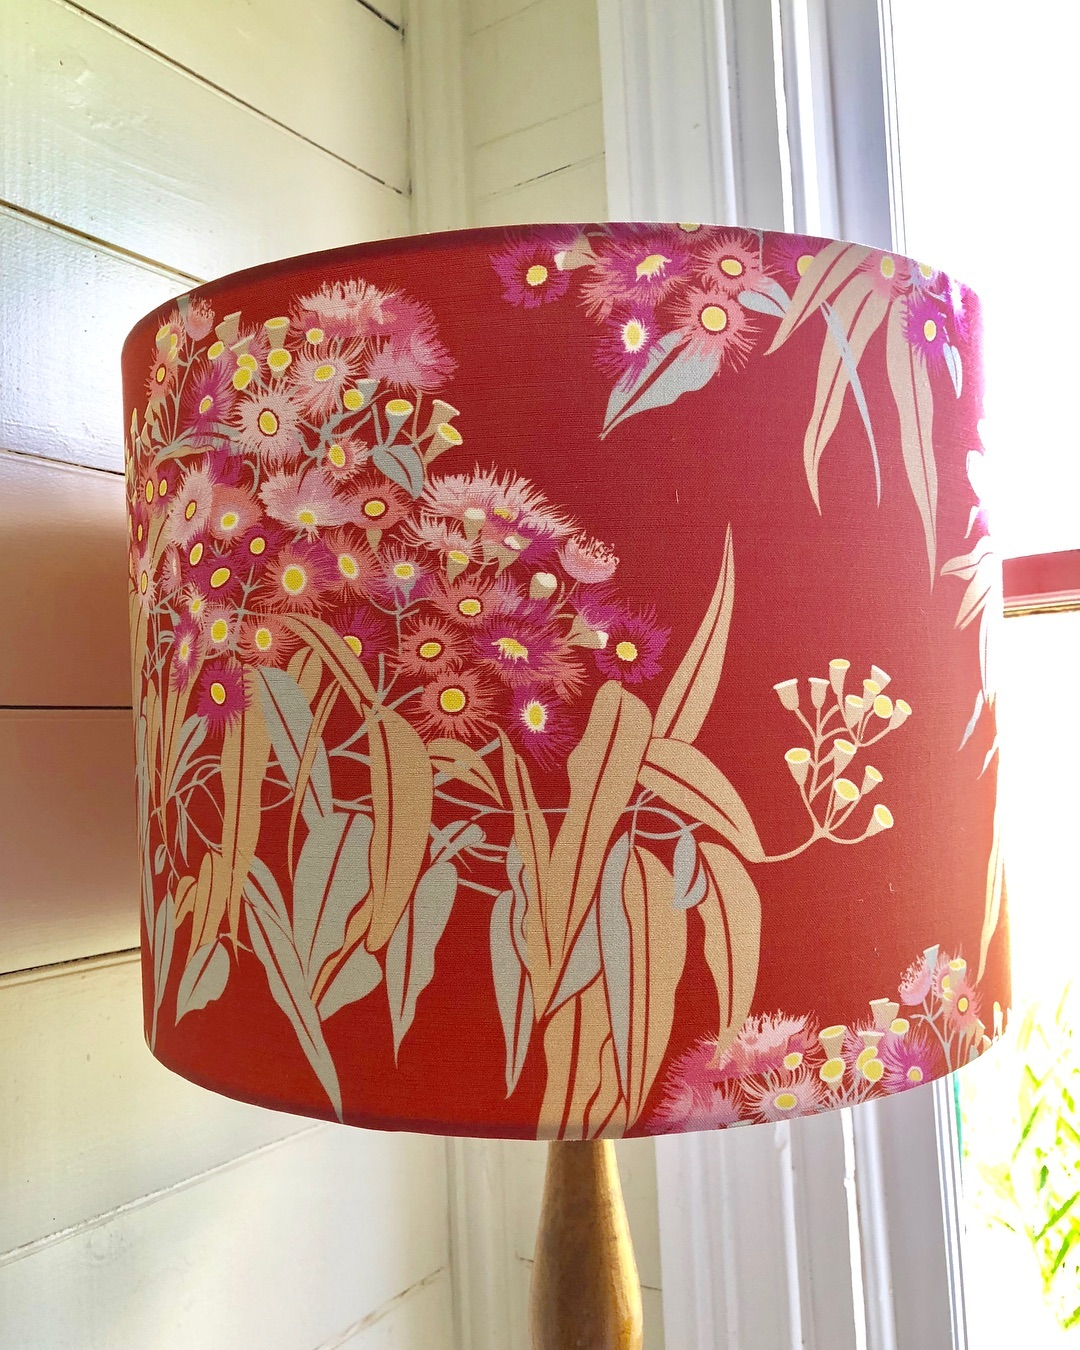 4 Leaf Clover fabric lampshade